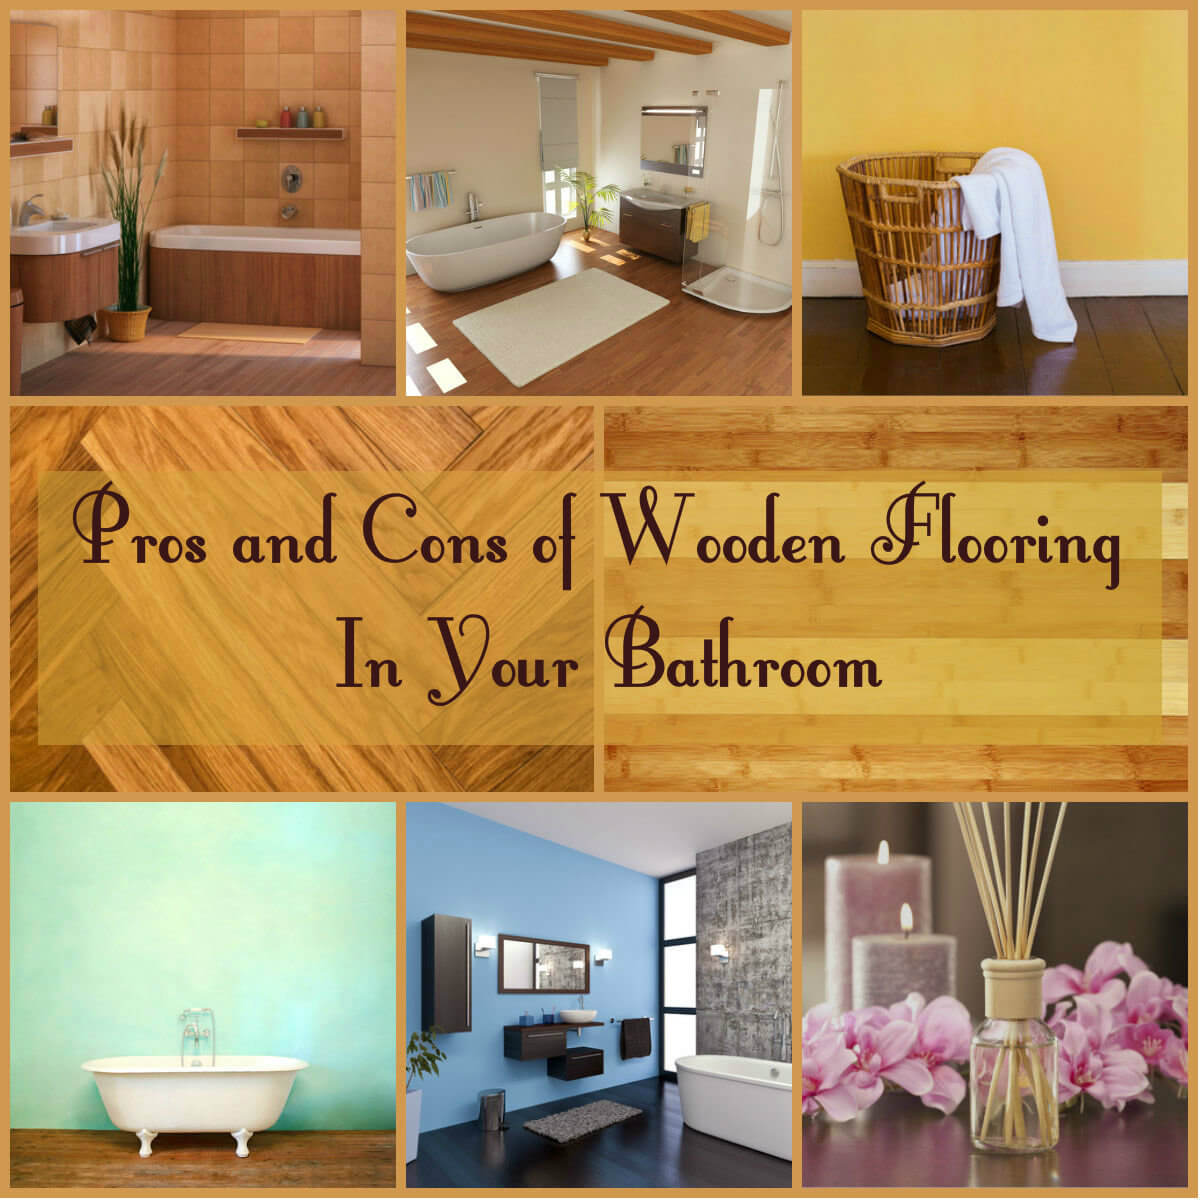 Pros and Cons of Wooden Flooring in Your Bathroom – Interior Design Can Laminate Flooring Go In A Bathroom on linoleum in a bathroom, formica countertops in a bathroom, tiling in a bathroom, laminate wood in bathroom, drywall in a bathroom, faux wood floor bathroom, painting in a bathroom, engineered hardwood in a bathroom, bamboo flooring in a bathroom, installing wood floors in bathroom, tile in a bathroom, ceramic flooring in a bathroom, floating shelves in a bathroom, laminate hardwood in bathroom, concrete in a bathroom, fireplaces in a bathroom, slate in a bathroom, furniture in a bathroom, installation in a bathroom, marble flooring in a bathroom,